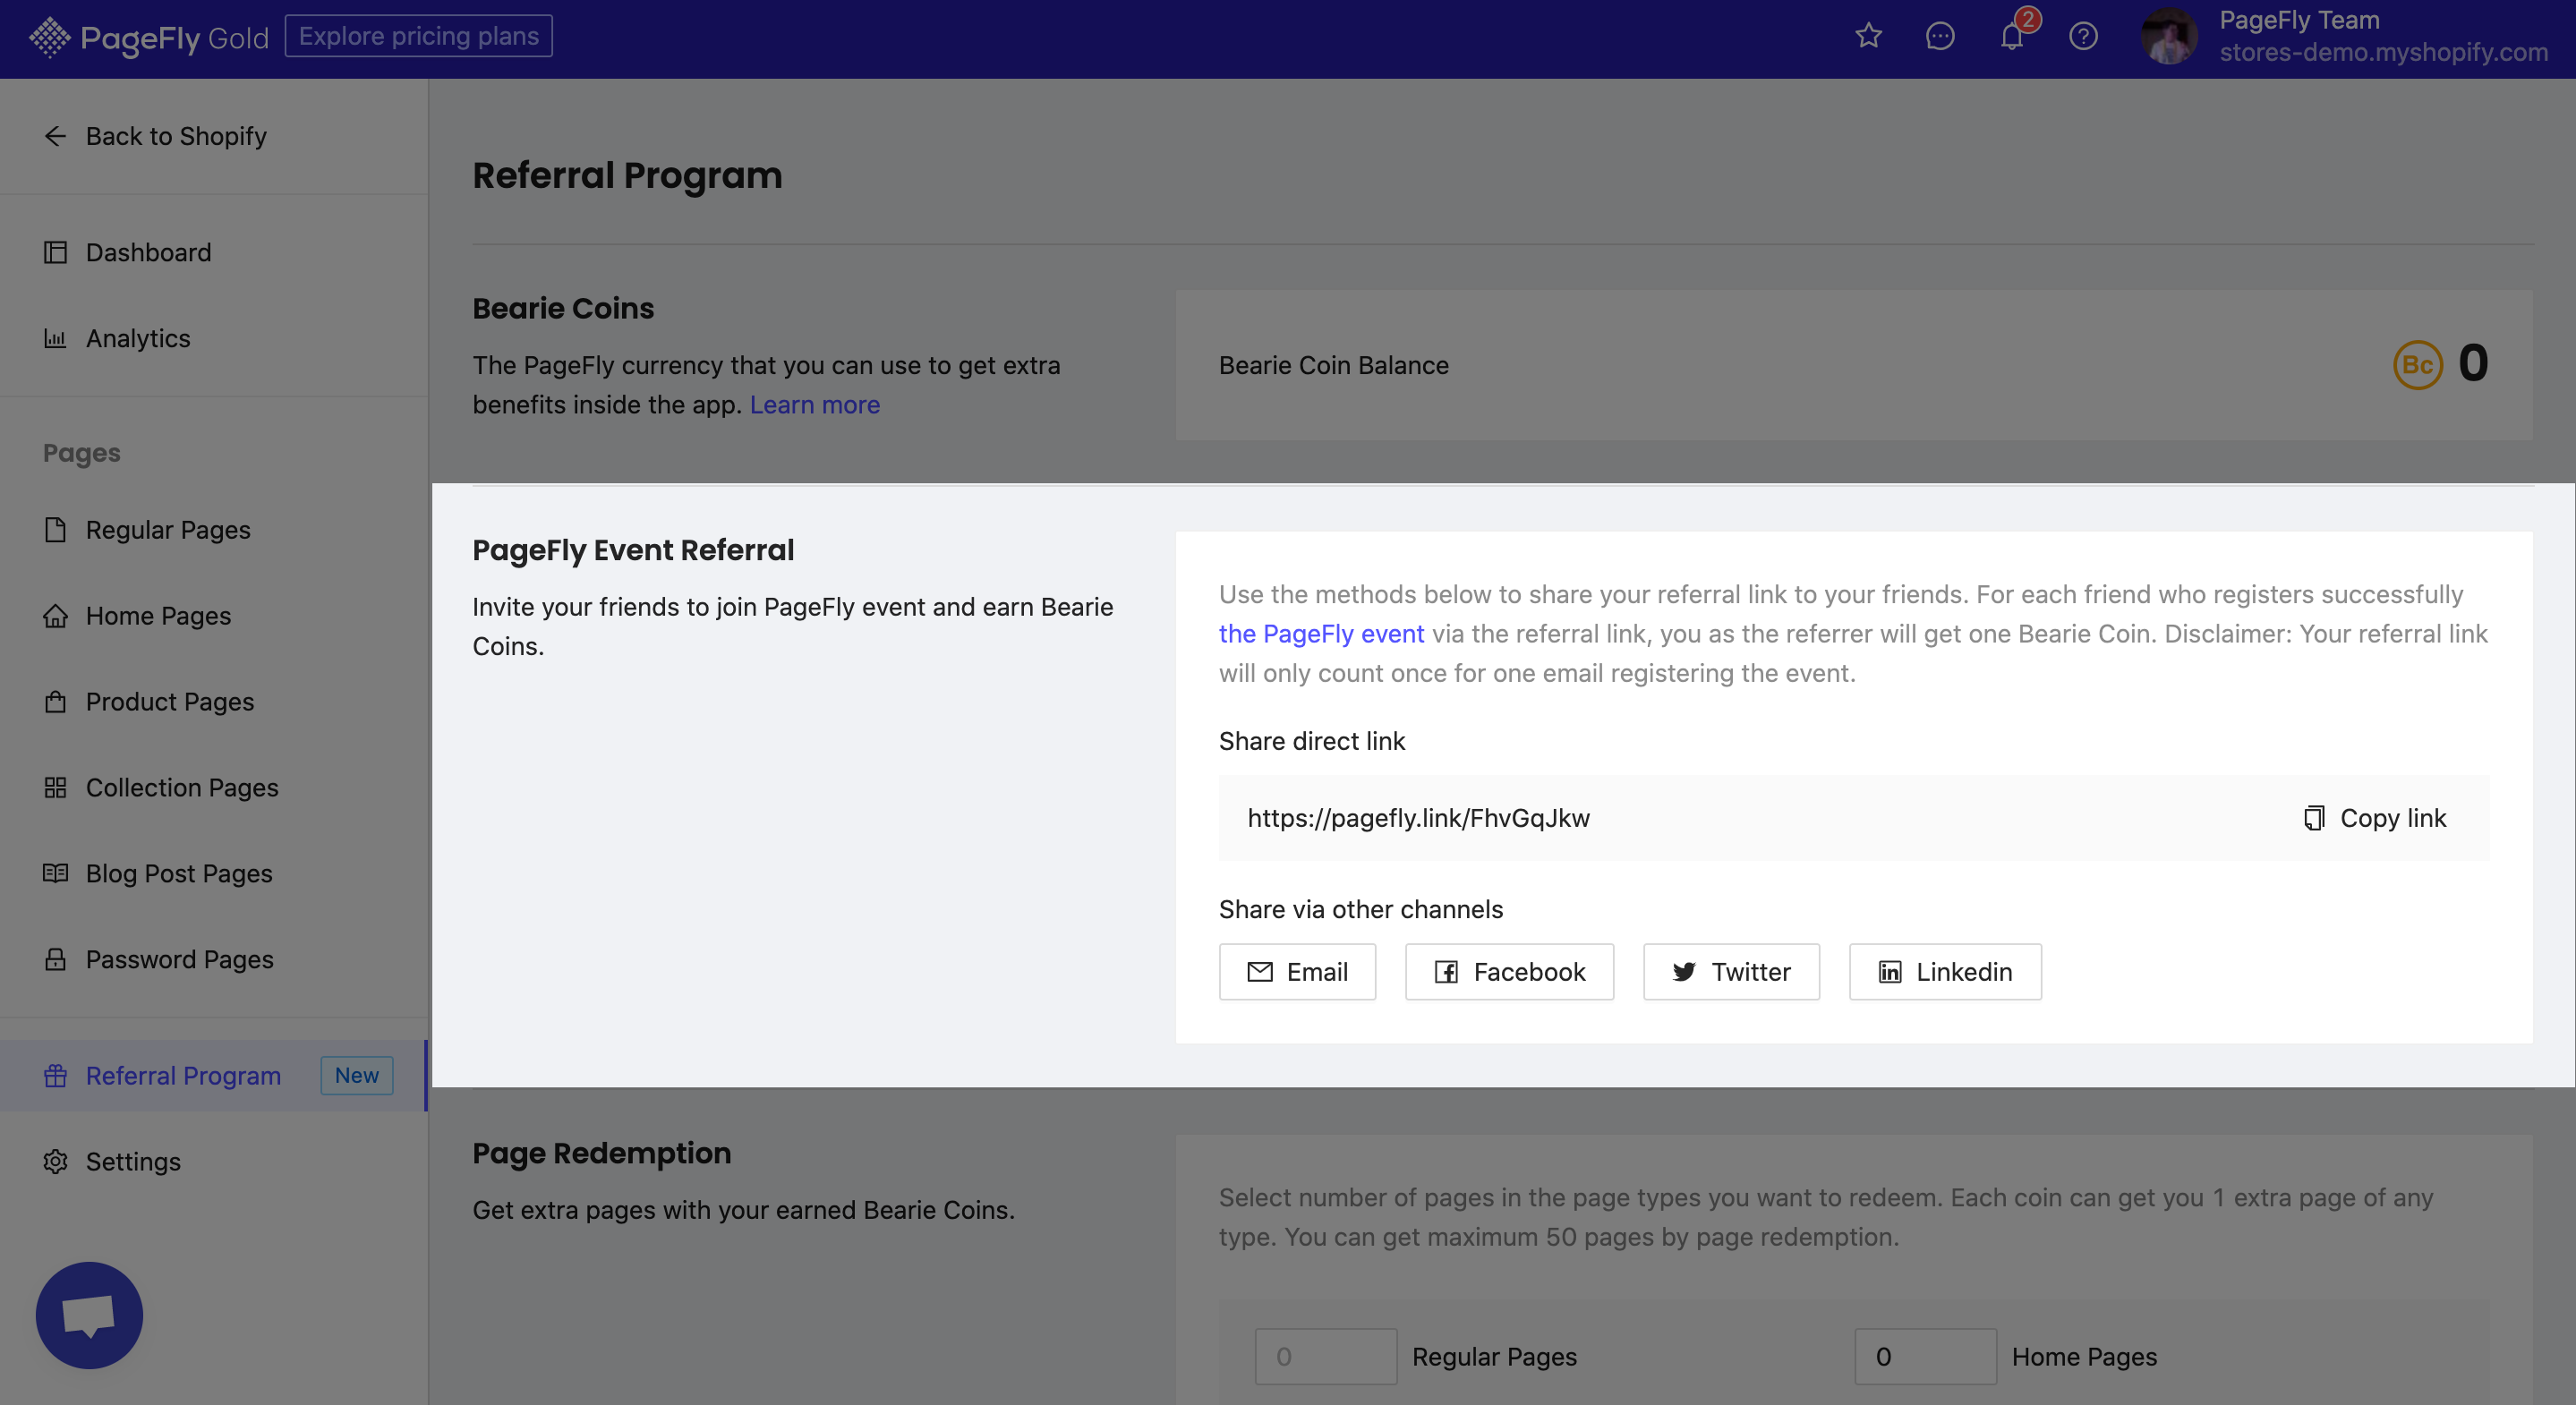 PageFly Event Referral_Referral Program